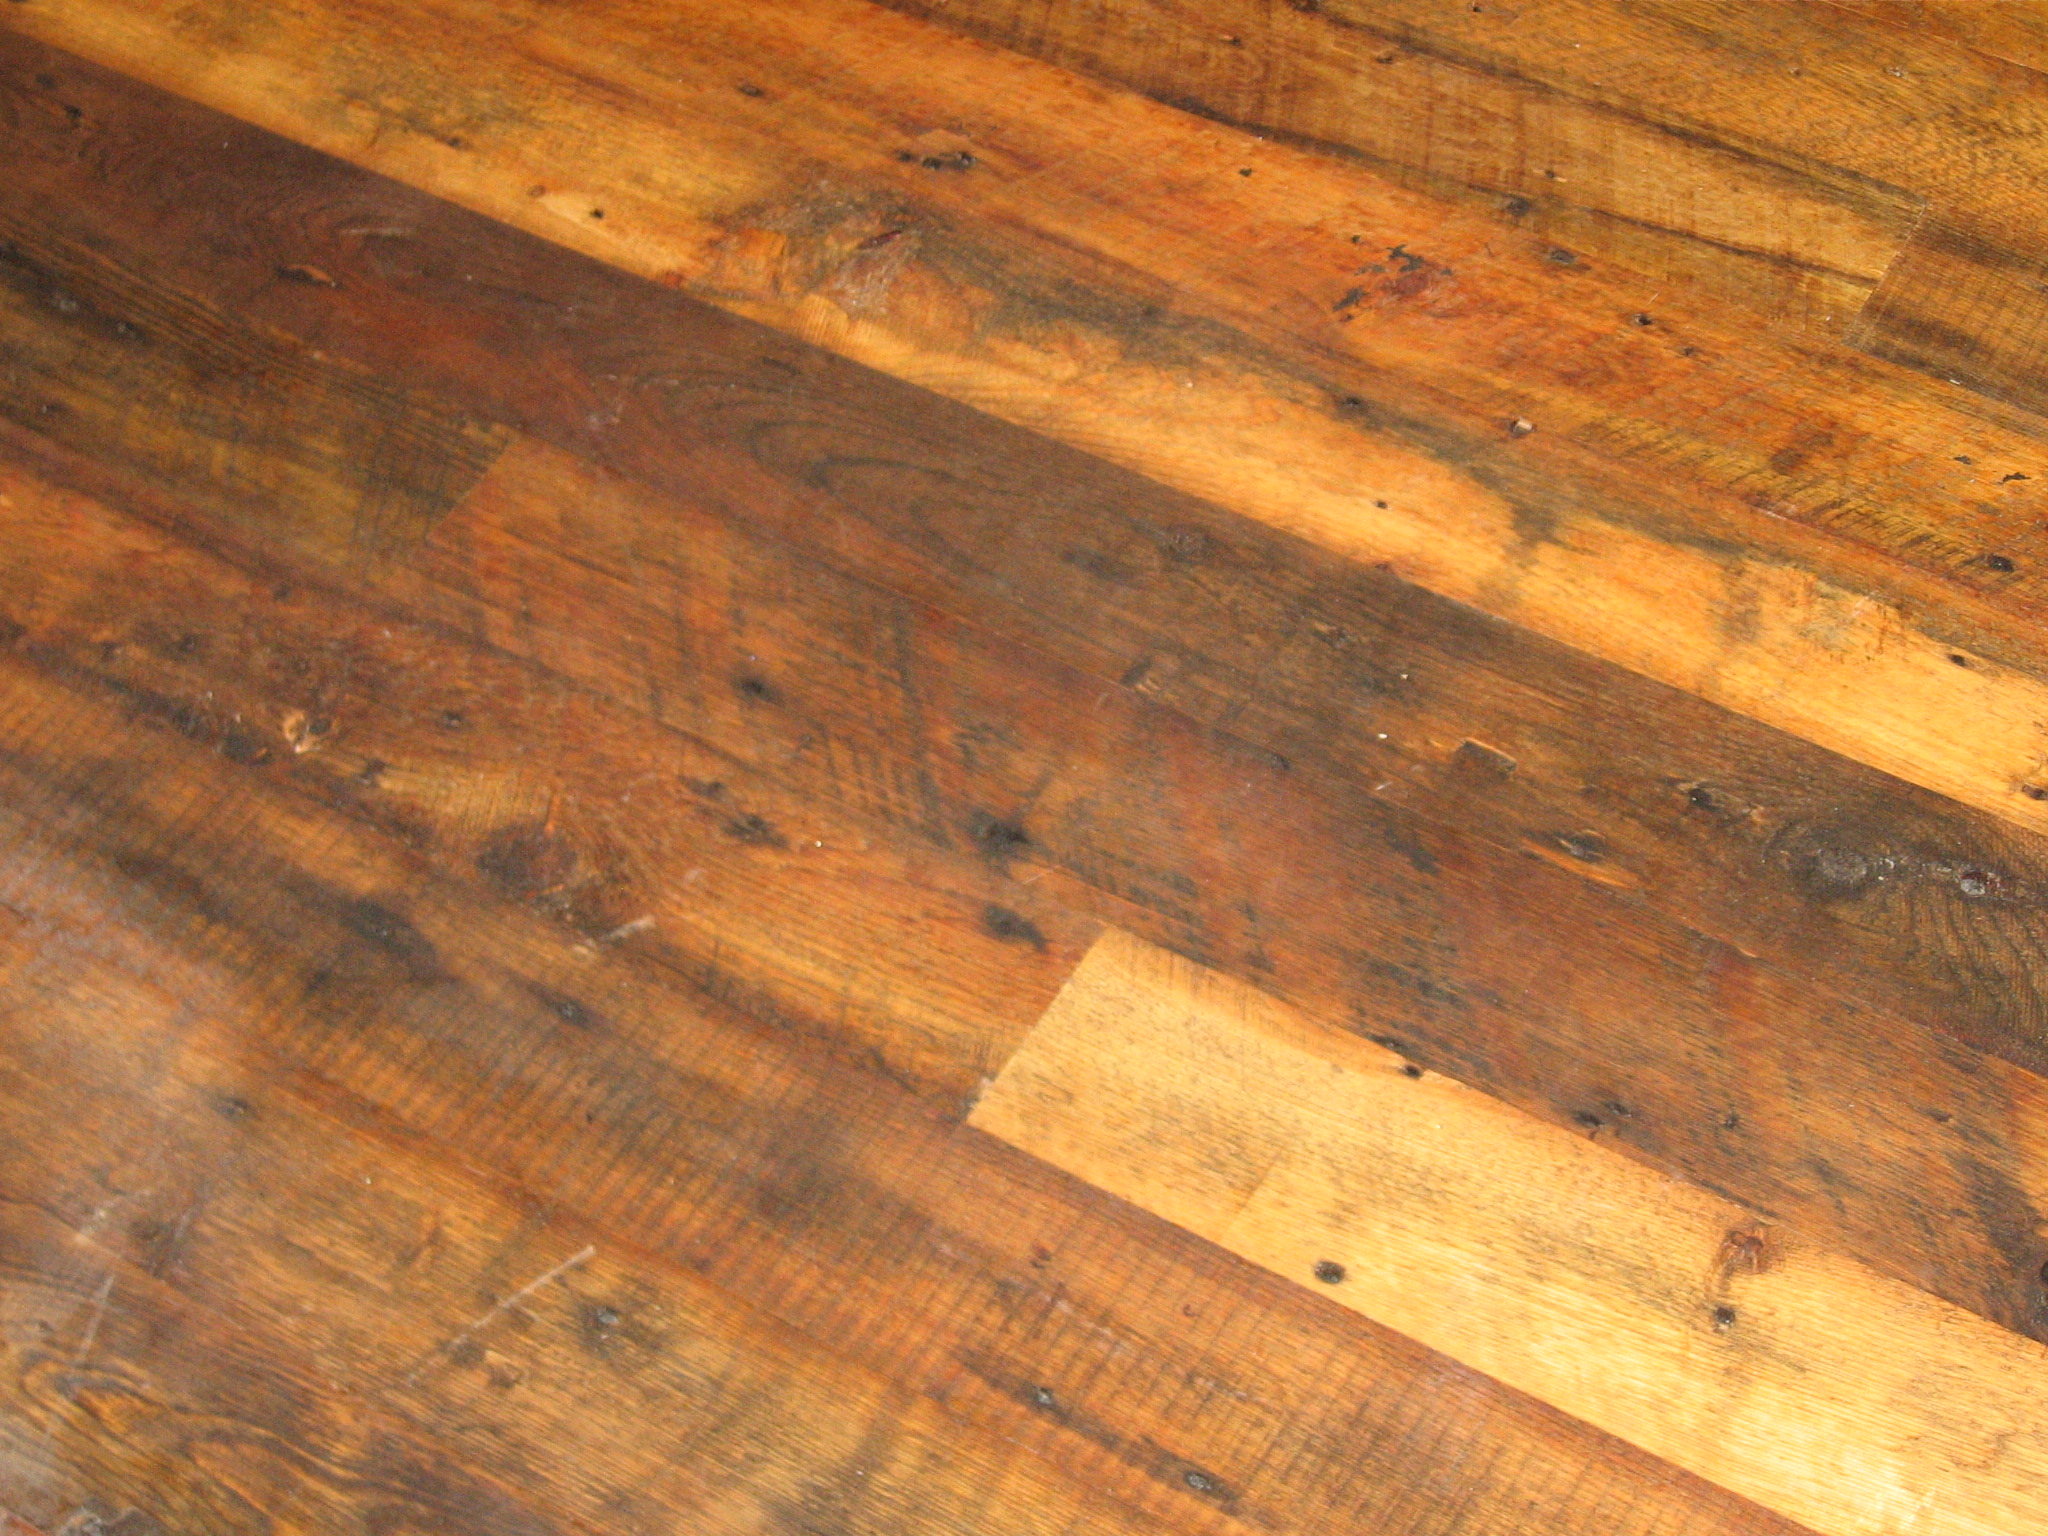 Hardwood floor patterns and reclaimed hardwoods for Reclaimed hardwood flooring